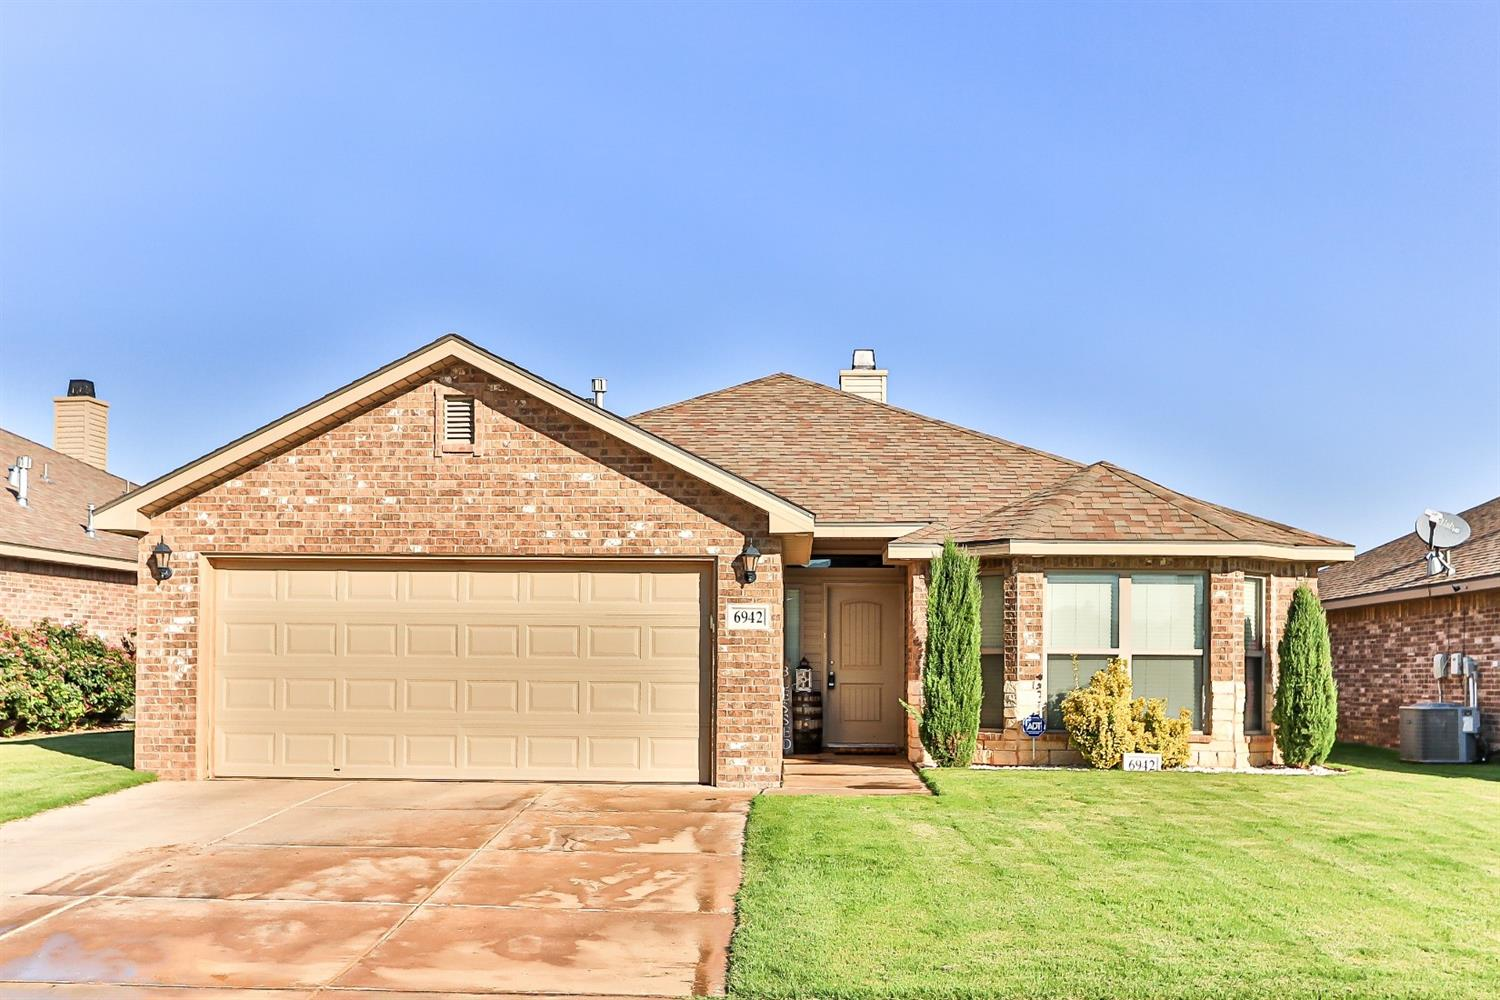 6942 37th Street, Lubbock in Lubbock County, TX 79407 Home for Sale